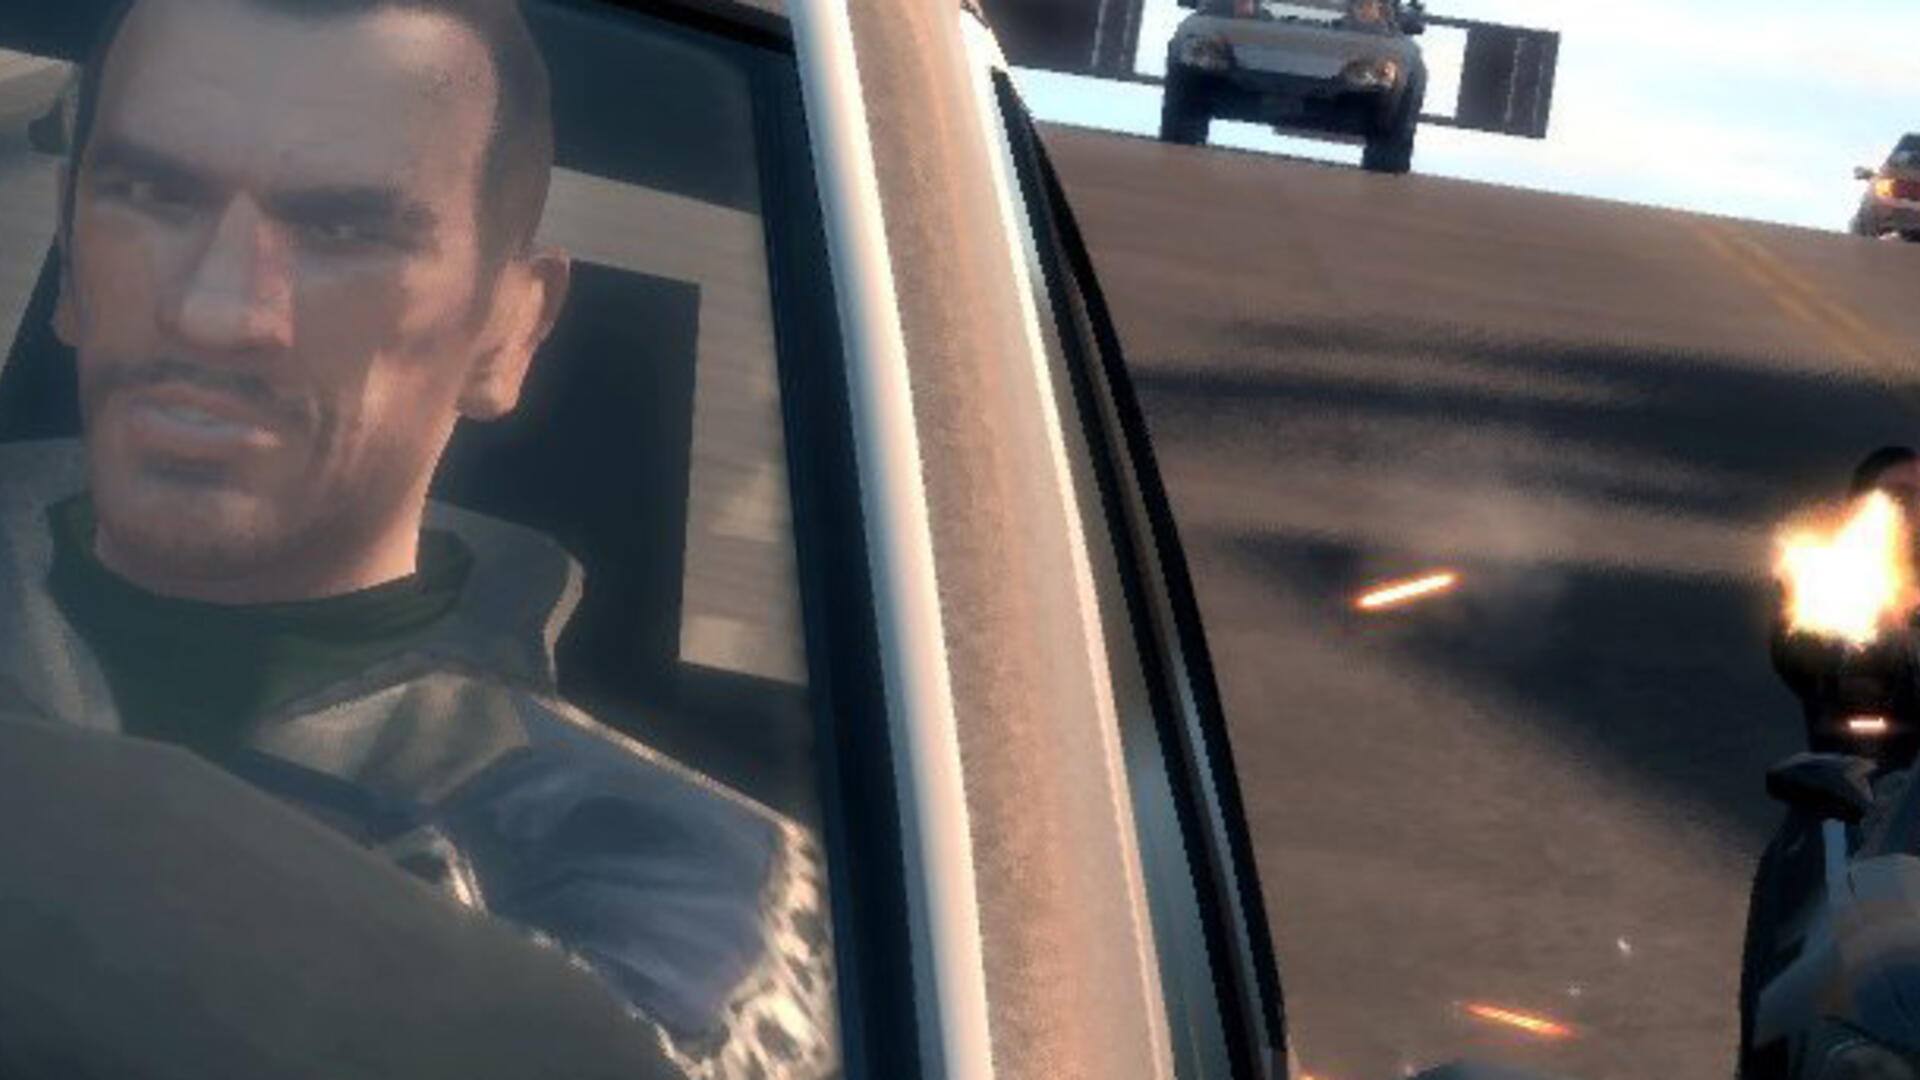 GTA 4 Transcends its Flawed Core by Embracing Realism